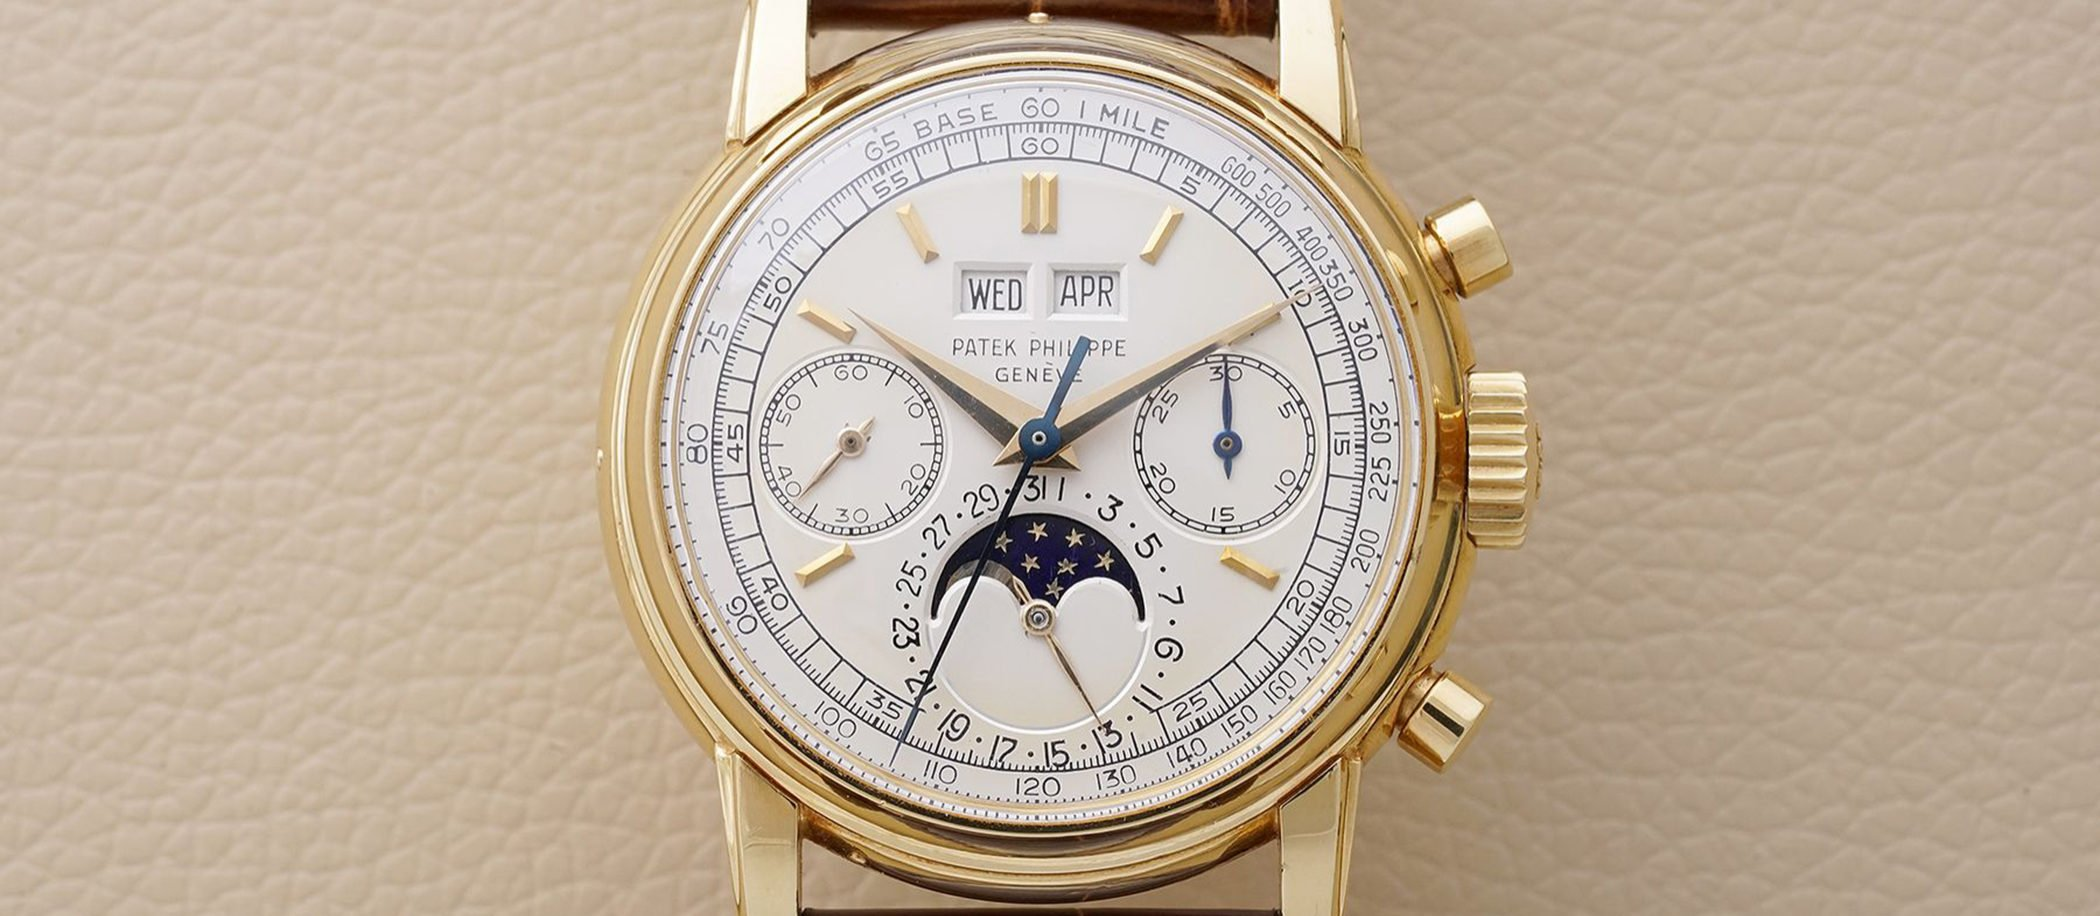 Phillips The Geneva Watch Auction: XI